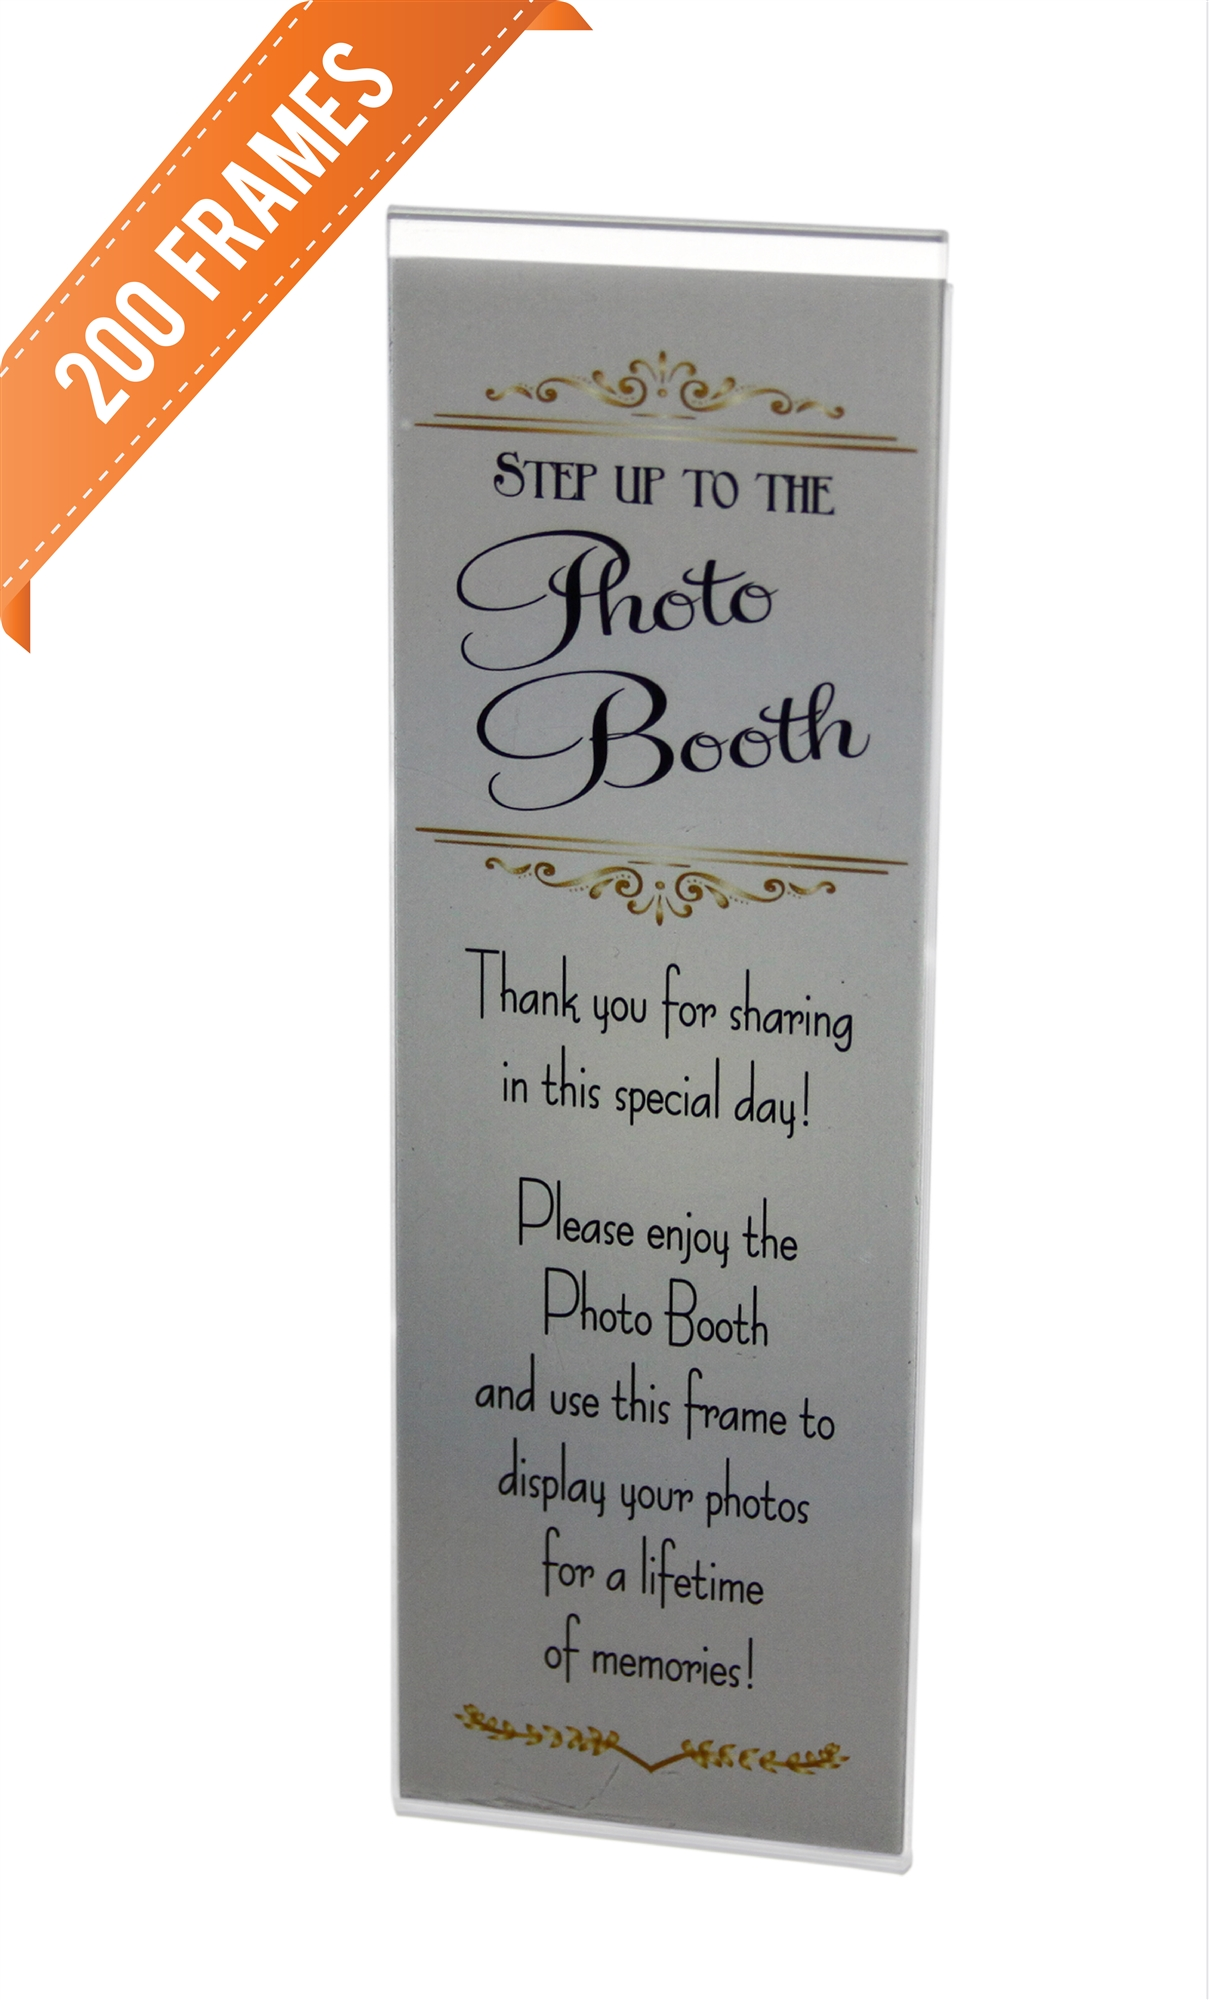 wholesale magnetic acrylic photo booth frames image - Wholesale Picture Frames